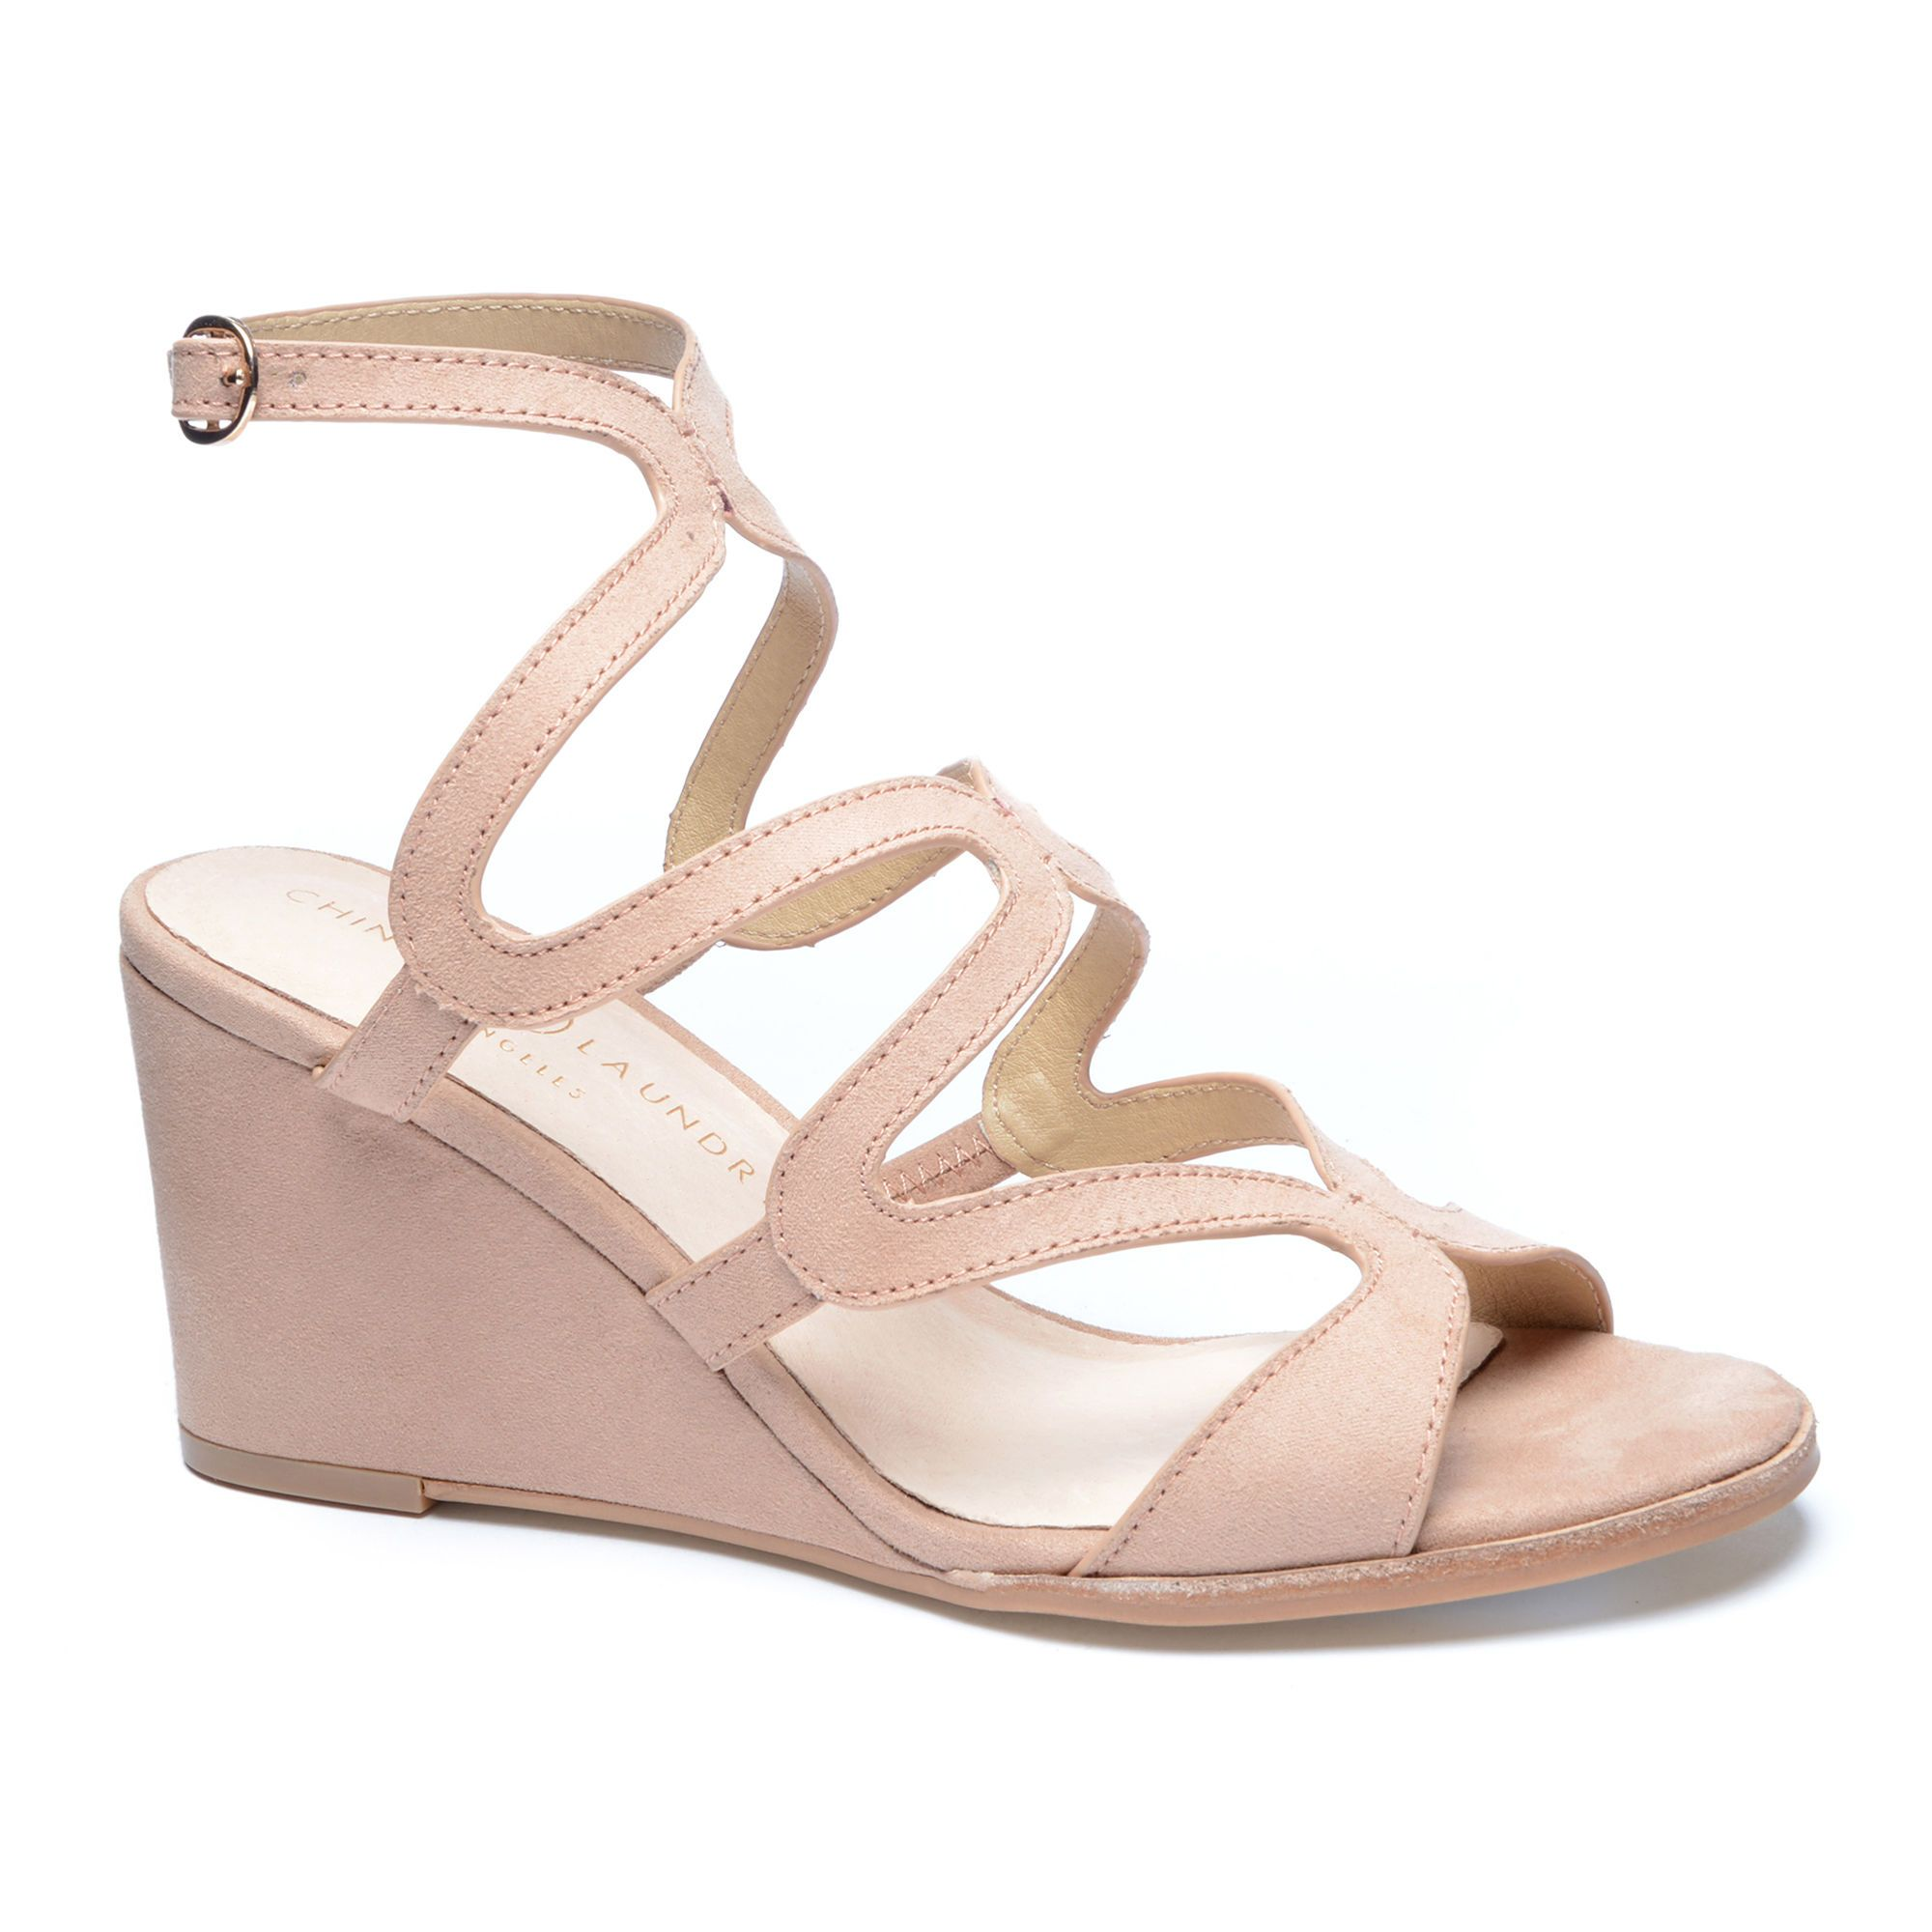 Radical Wedge Sandal Womens Sandals Fashion Shoes Wedge Sandals